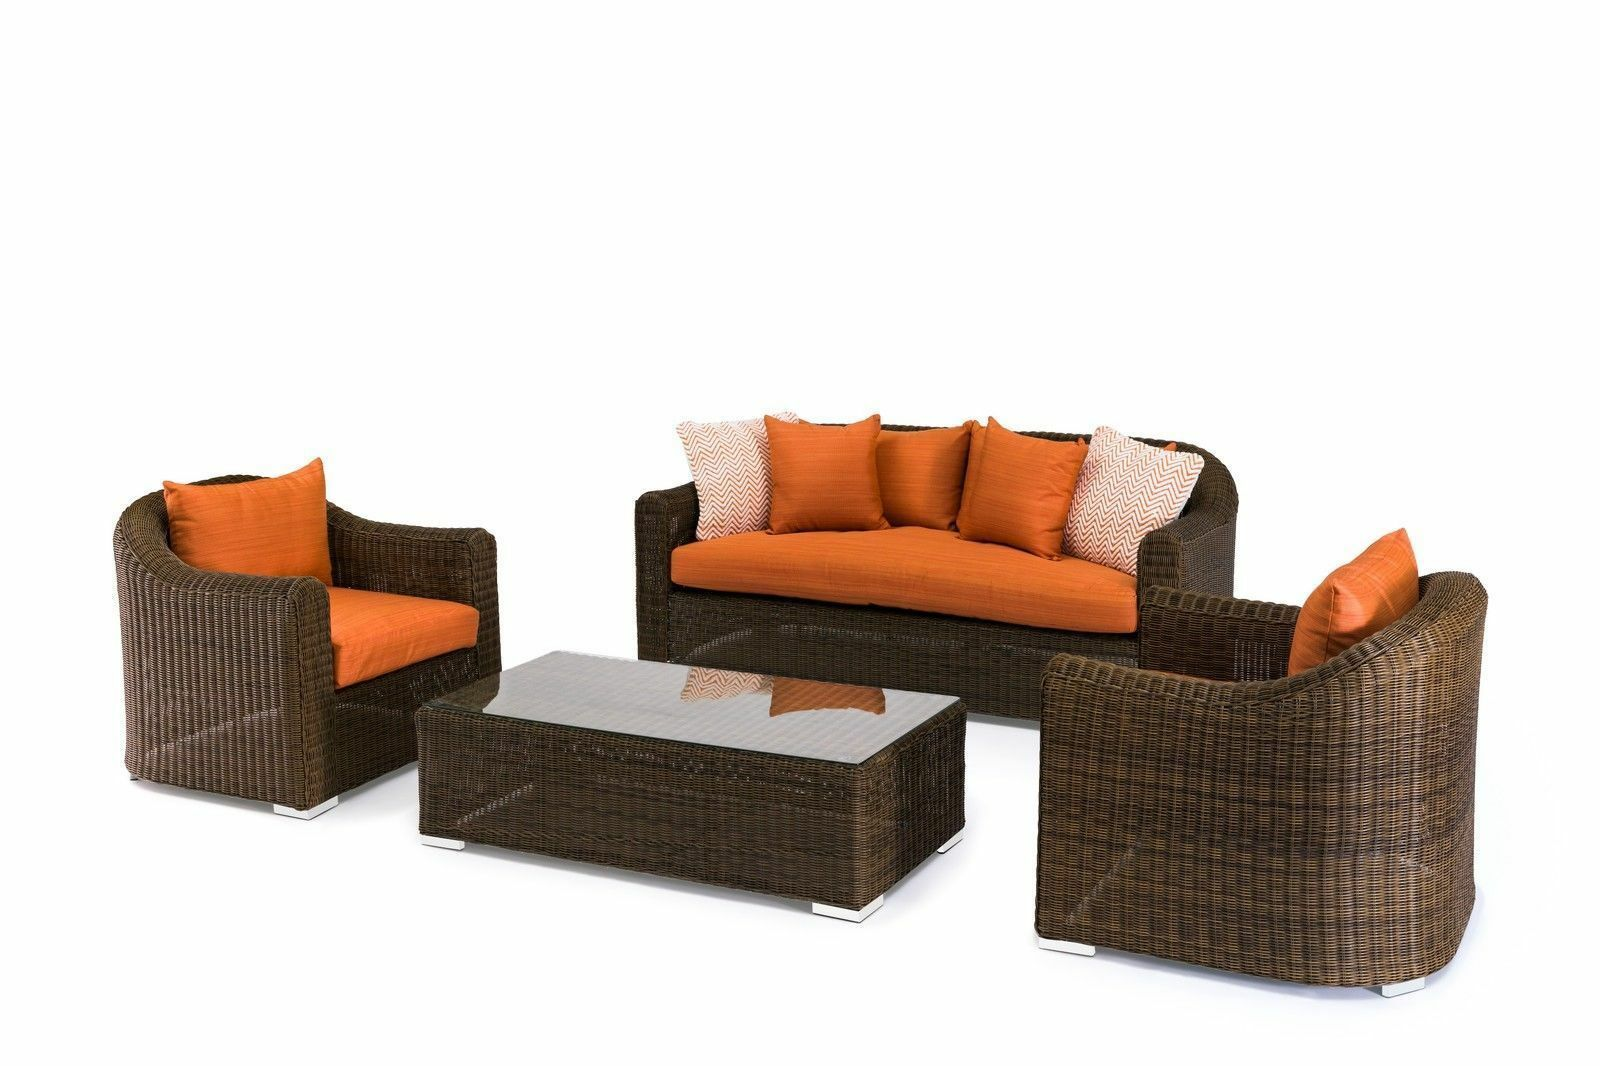 Rattan Patio Garden Furniture Sets For Sale Shop With Afterpay Ebay - Outdoor Furniture Sets Australia